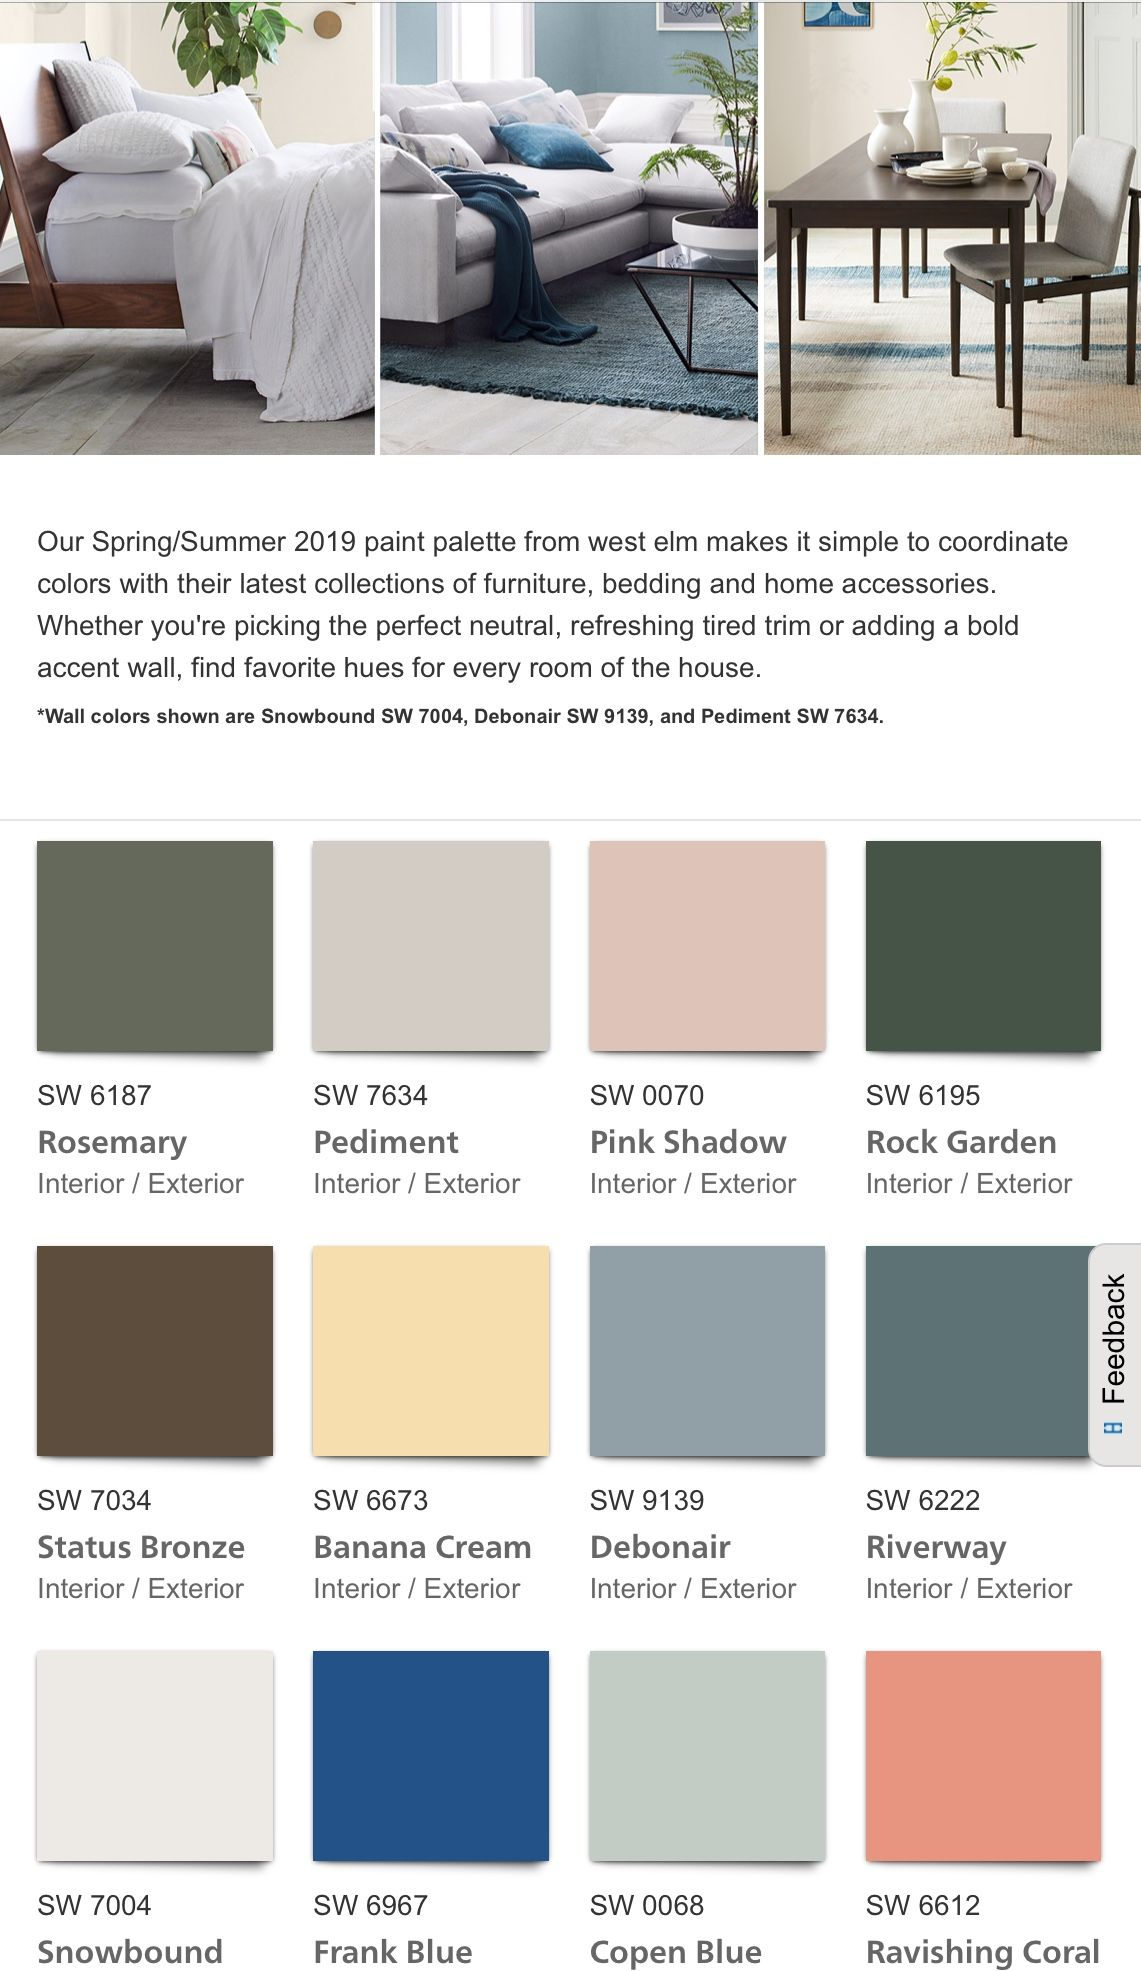 Sherwin Williams West Elm Collection 2019 Wall colors